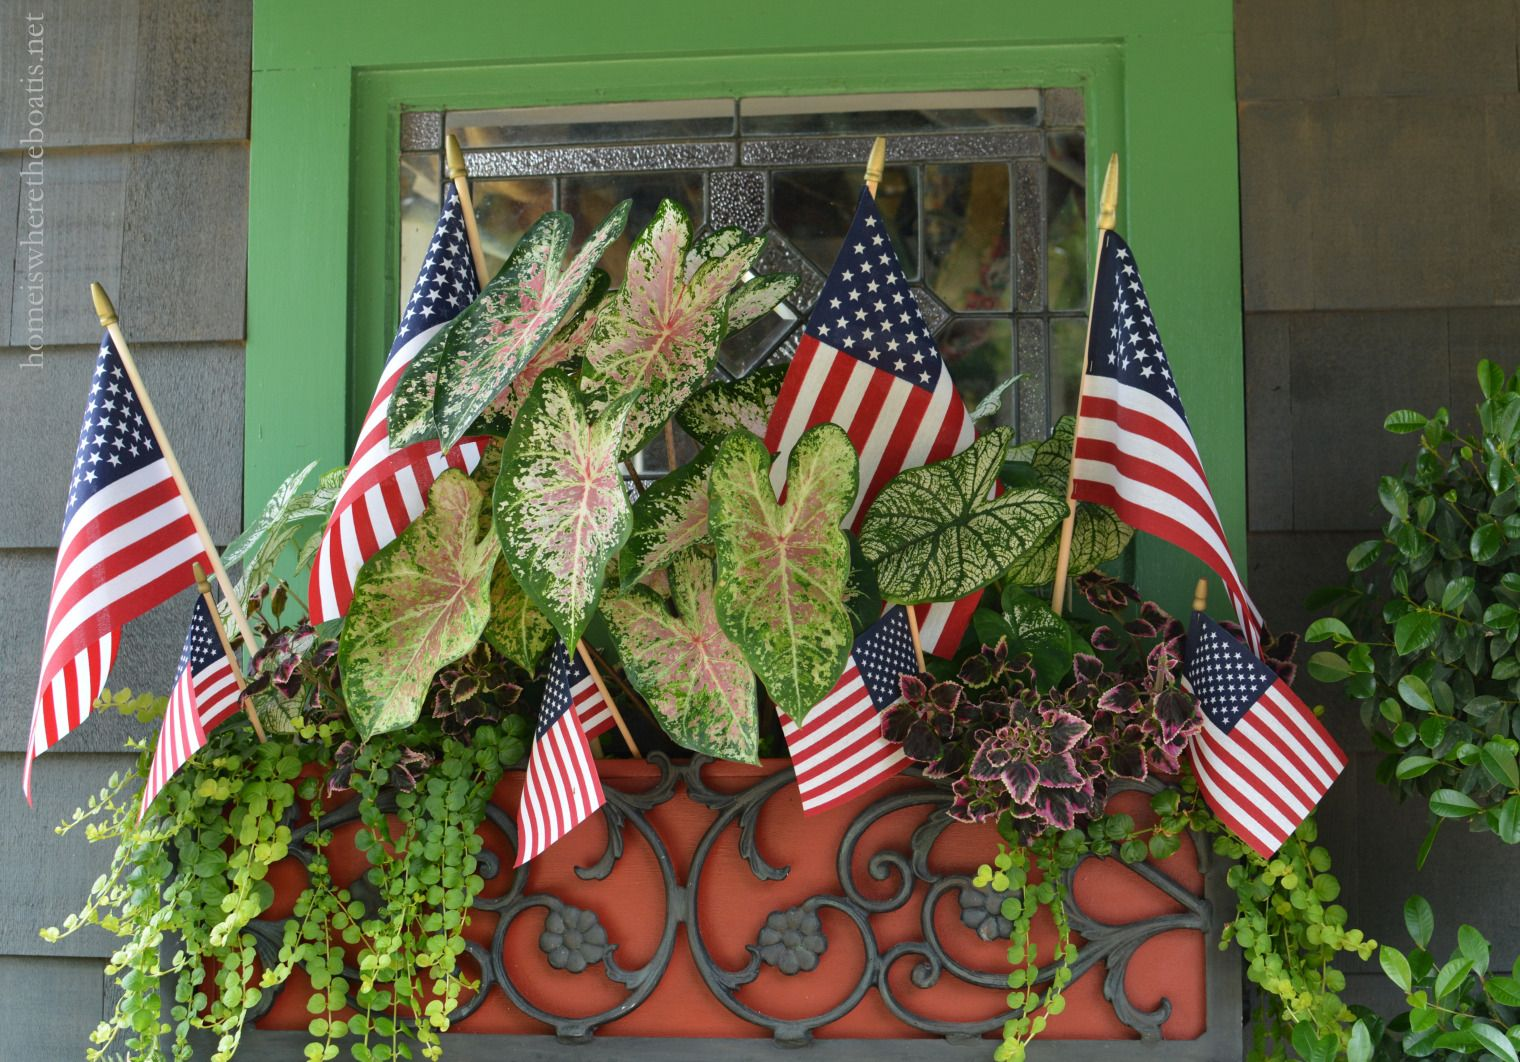 Potting Shed Celebrating the Red, White and Blue